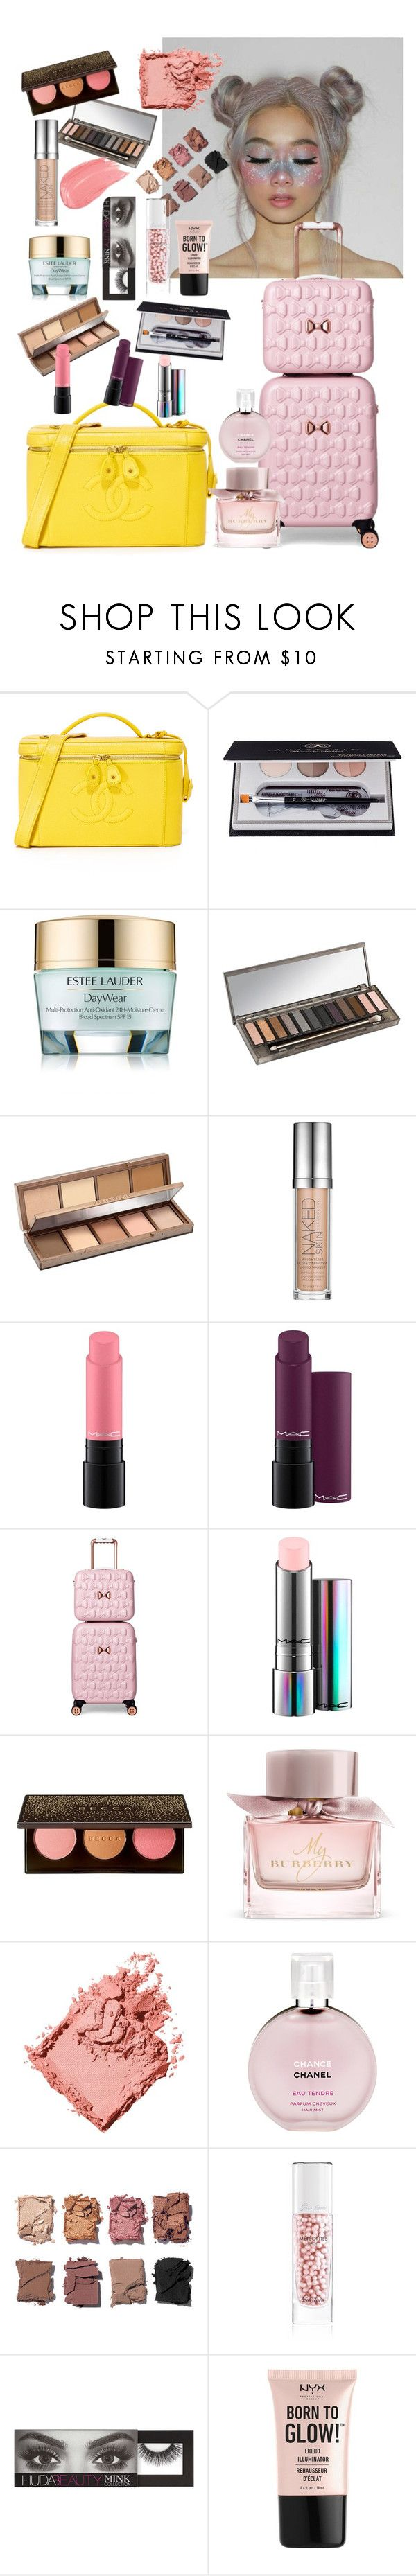 """""""my makeup bag"""" by ababneh-rose ❤ liked on Polyvore featuring beauty, Anastasia Beverly Hills, Estée Lauder, Urban Decay, MAC Cosmetics, Ted Baker, Burberry, Bobbi Brown Cosmetics, Chanel and Illamasqua"""